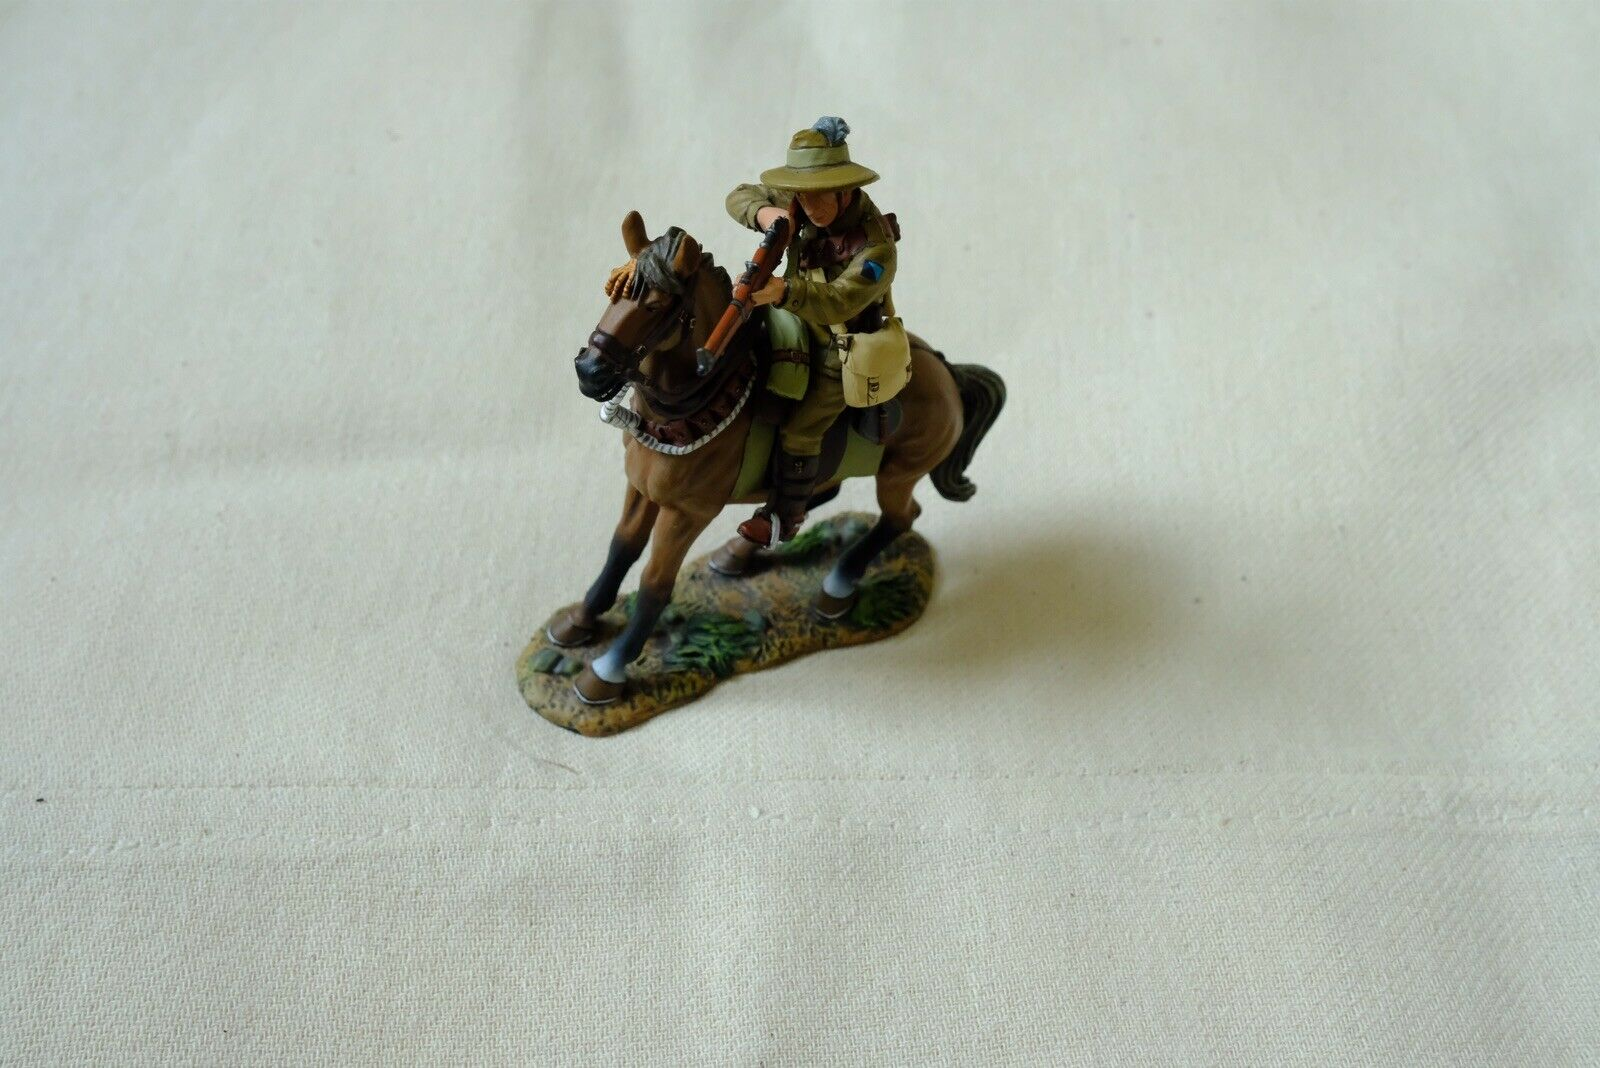 King And Country Australian Light Horse AL16 Firing Rifle Lighthorseman Lighthorseman Soldier